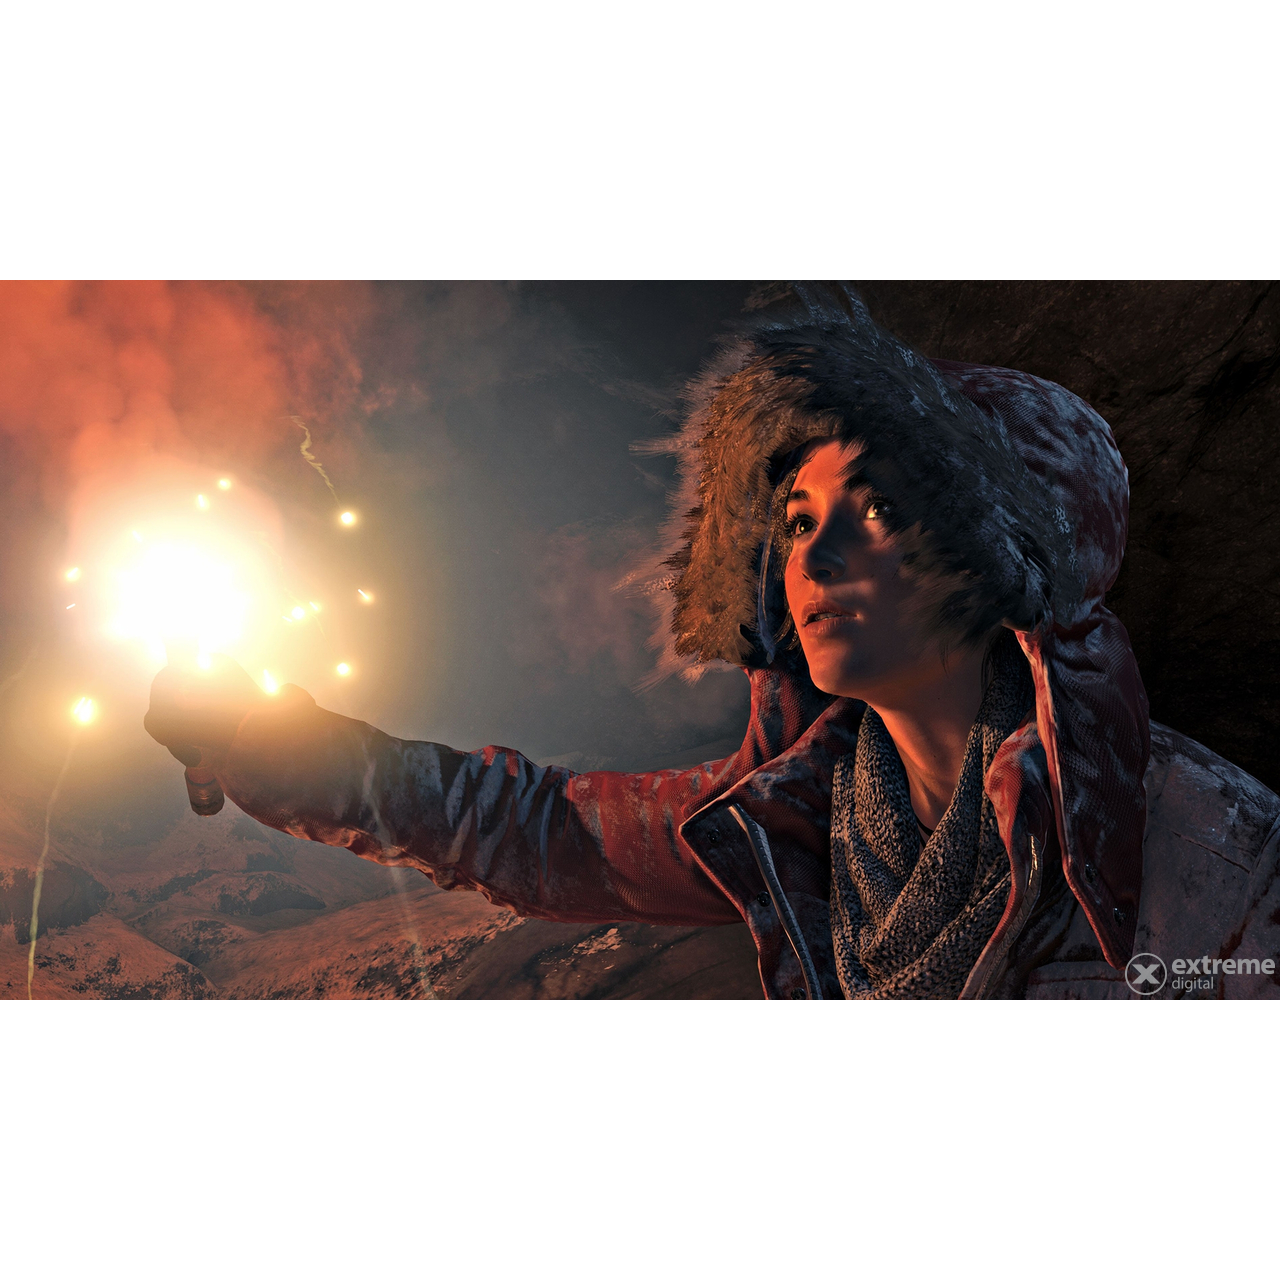 rise-of-the-tomb-raider-xbox-one-jatekszoftver_66df1bca.jpg